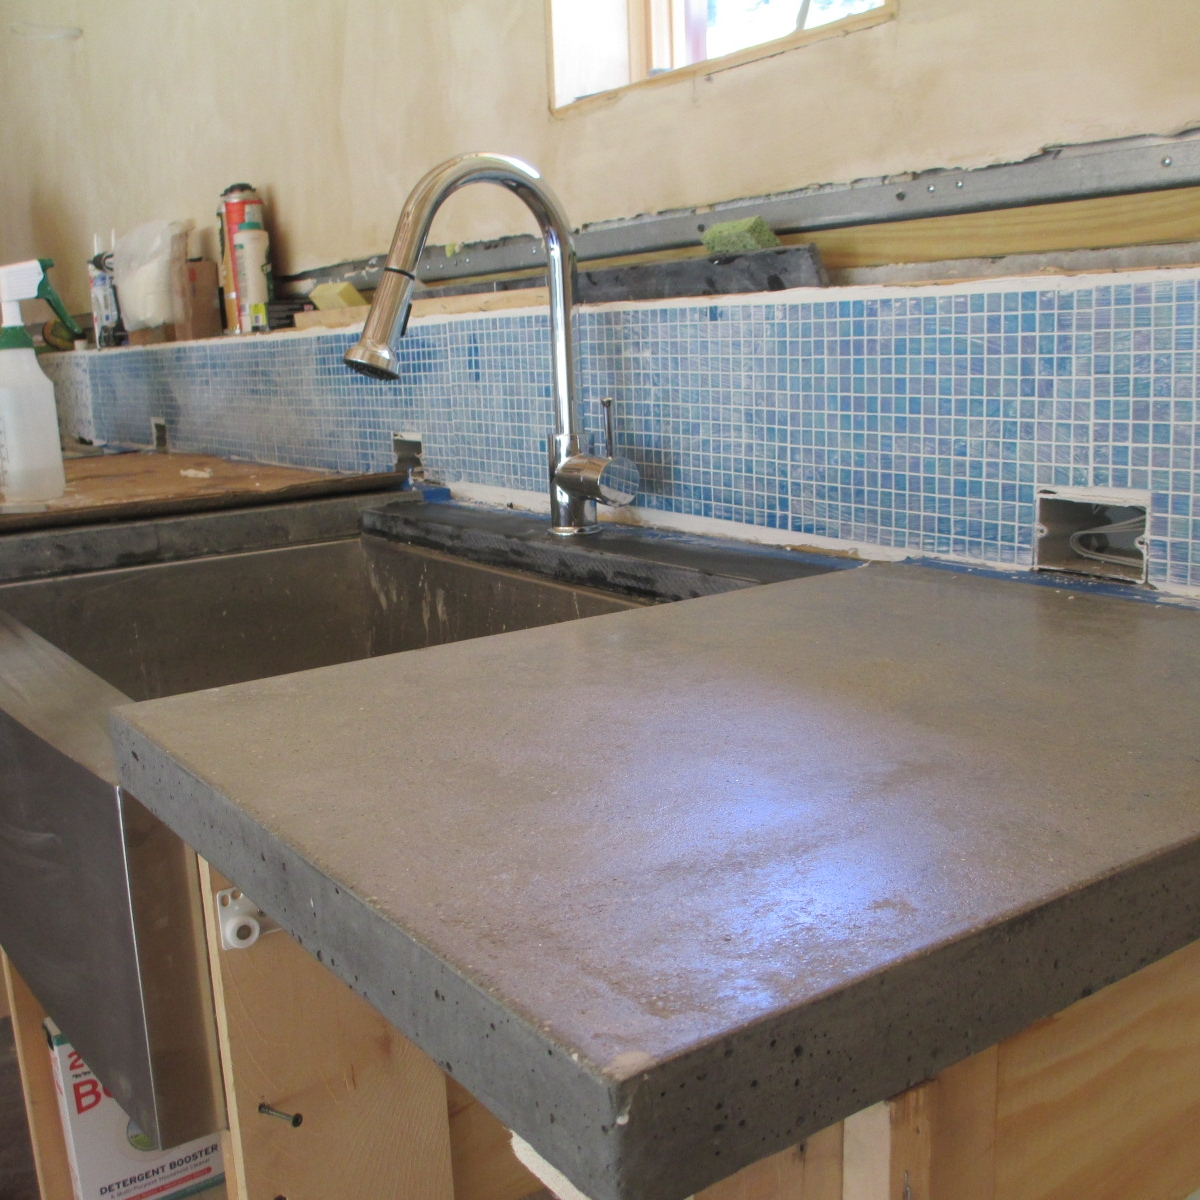 steel troweled finish on a concrete counter